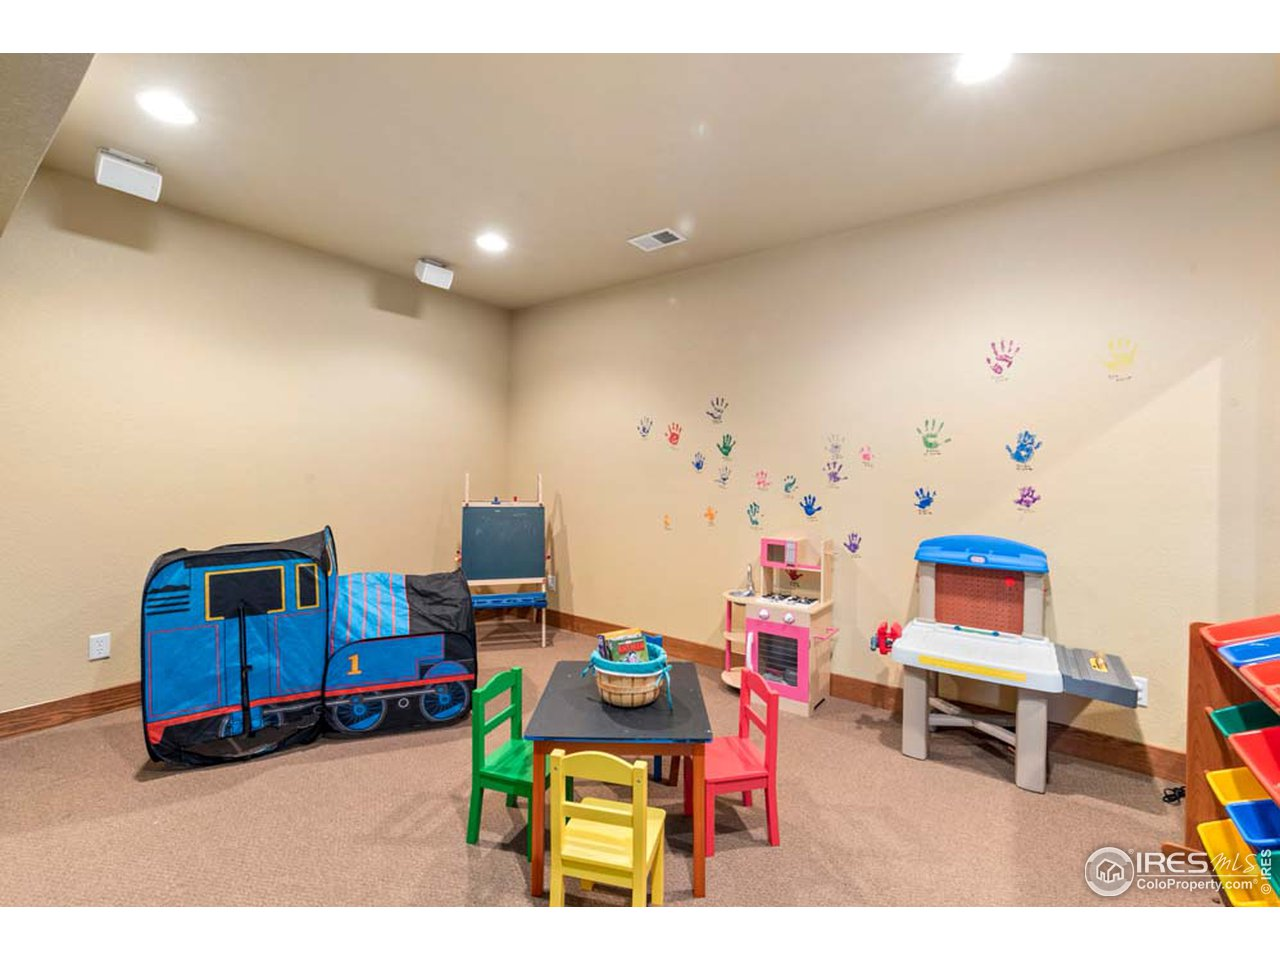 Basement playroom/Workout space